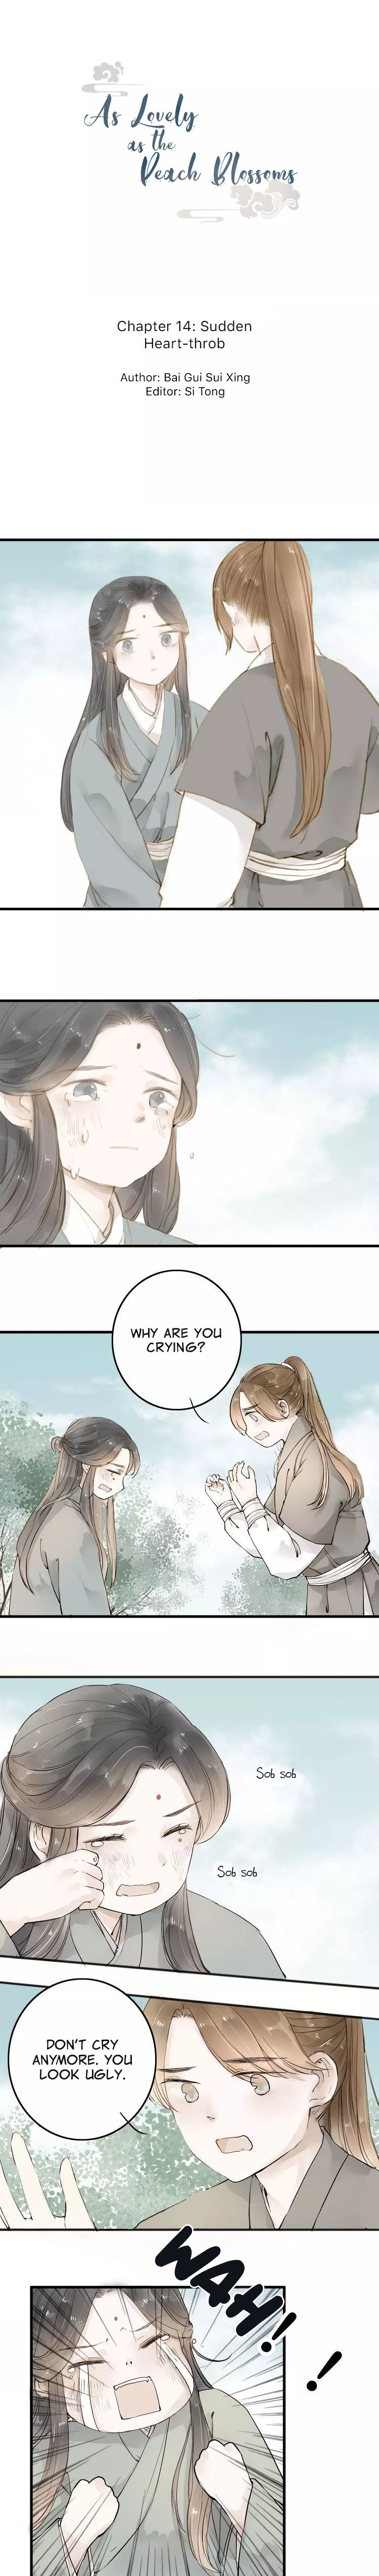 As Lovely As The Peach Blossoms - chapter 14 - #1